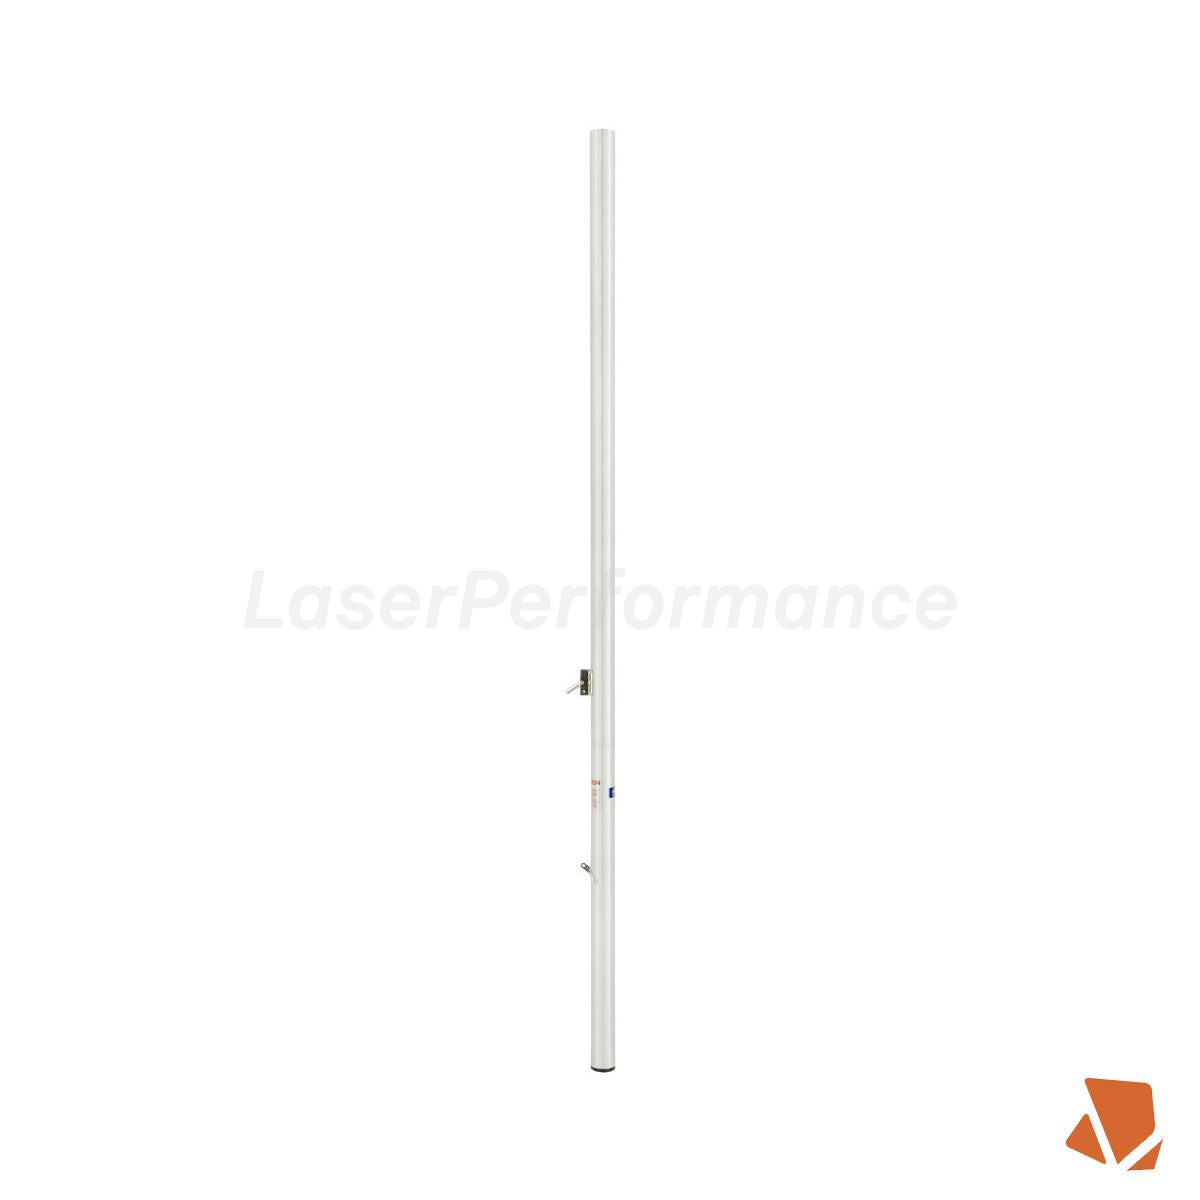 Laser Radial Lower Mast